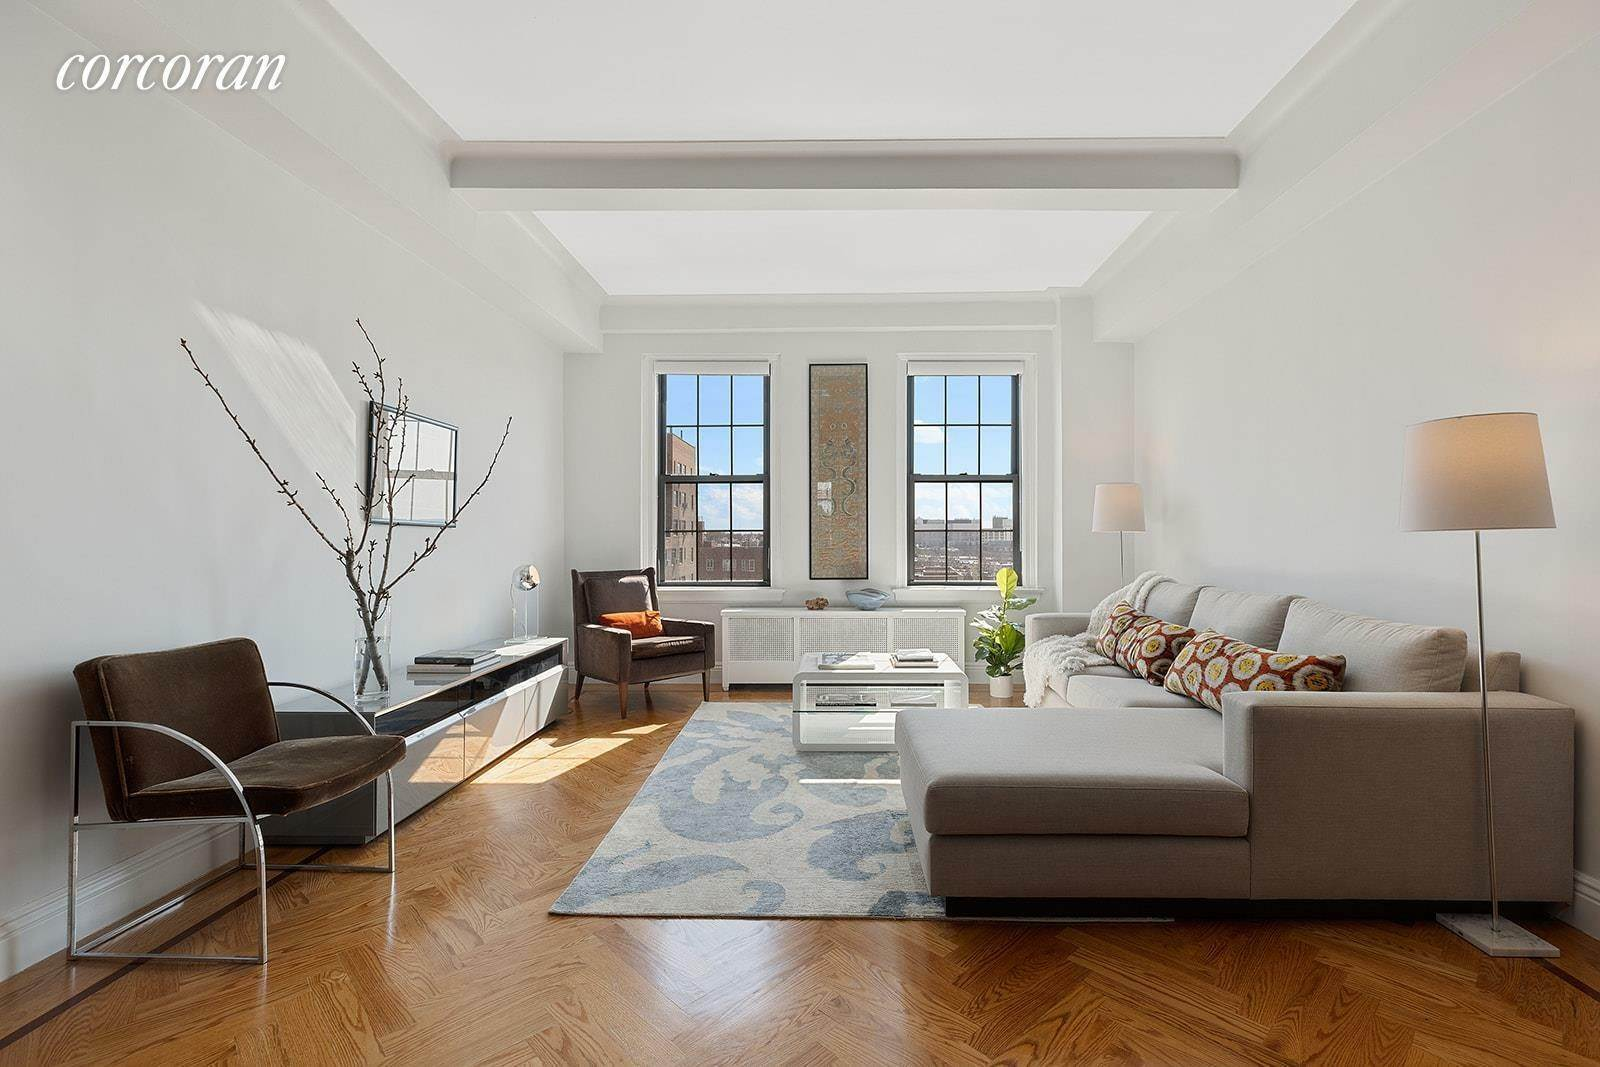 Co-op property for Sale at 90 8th Avenue, 9D Brooklyn, New York,11215 United States